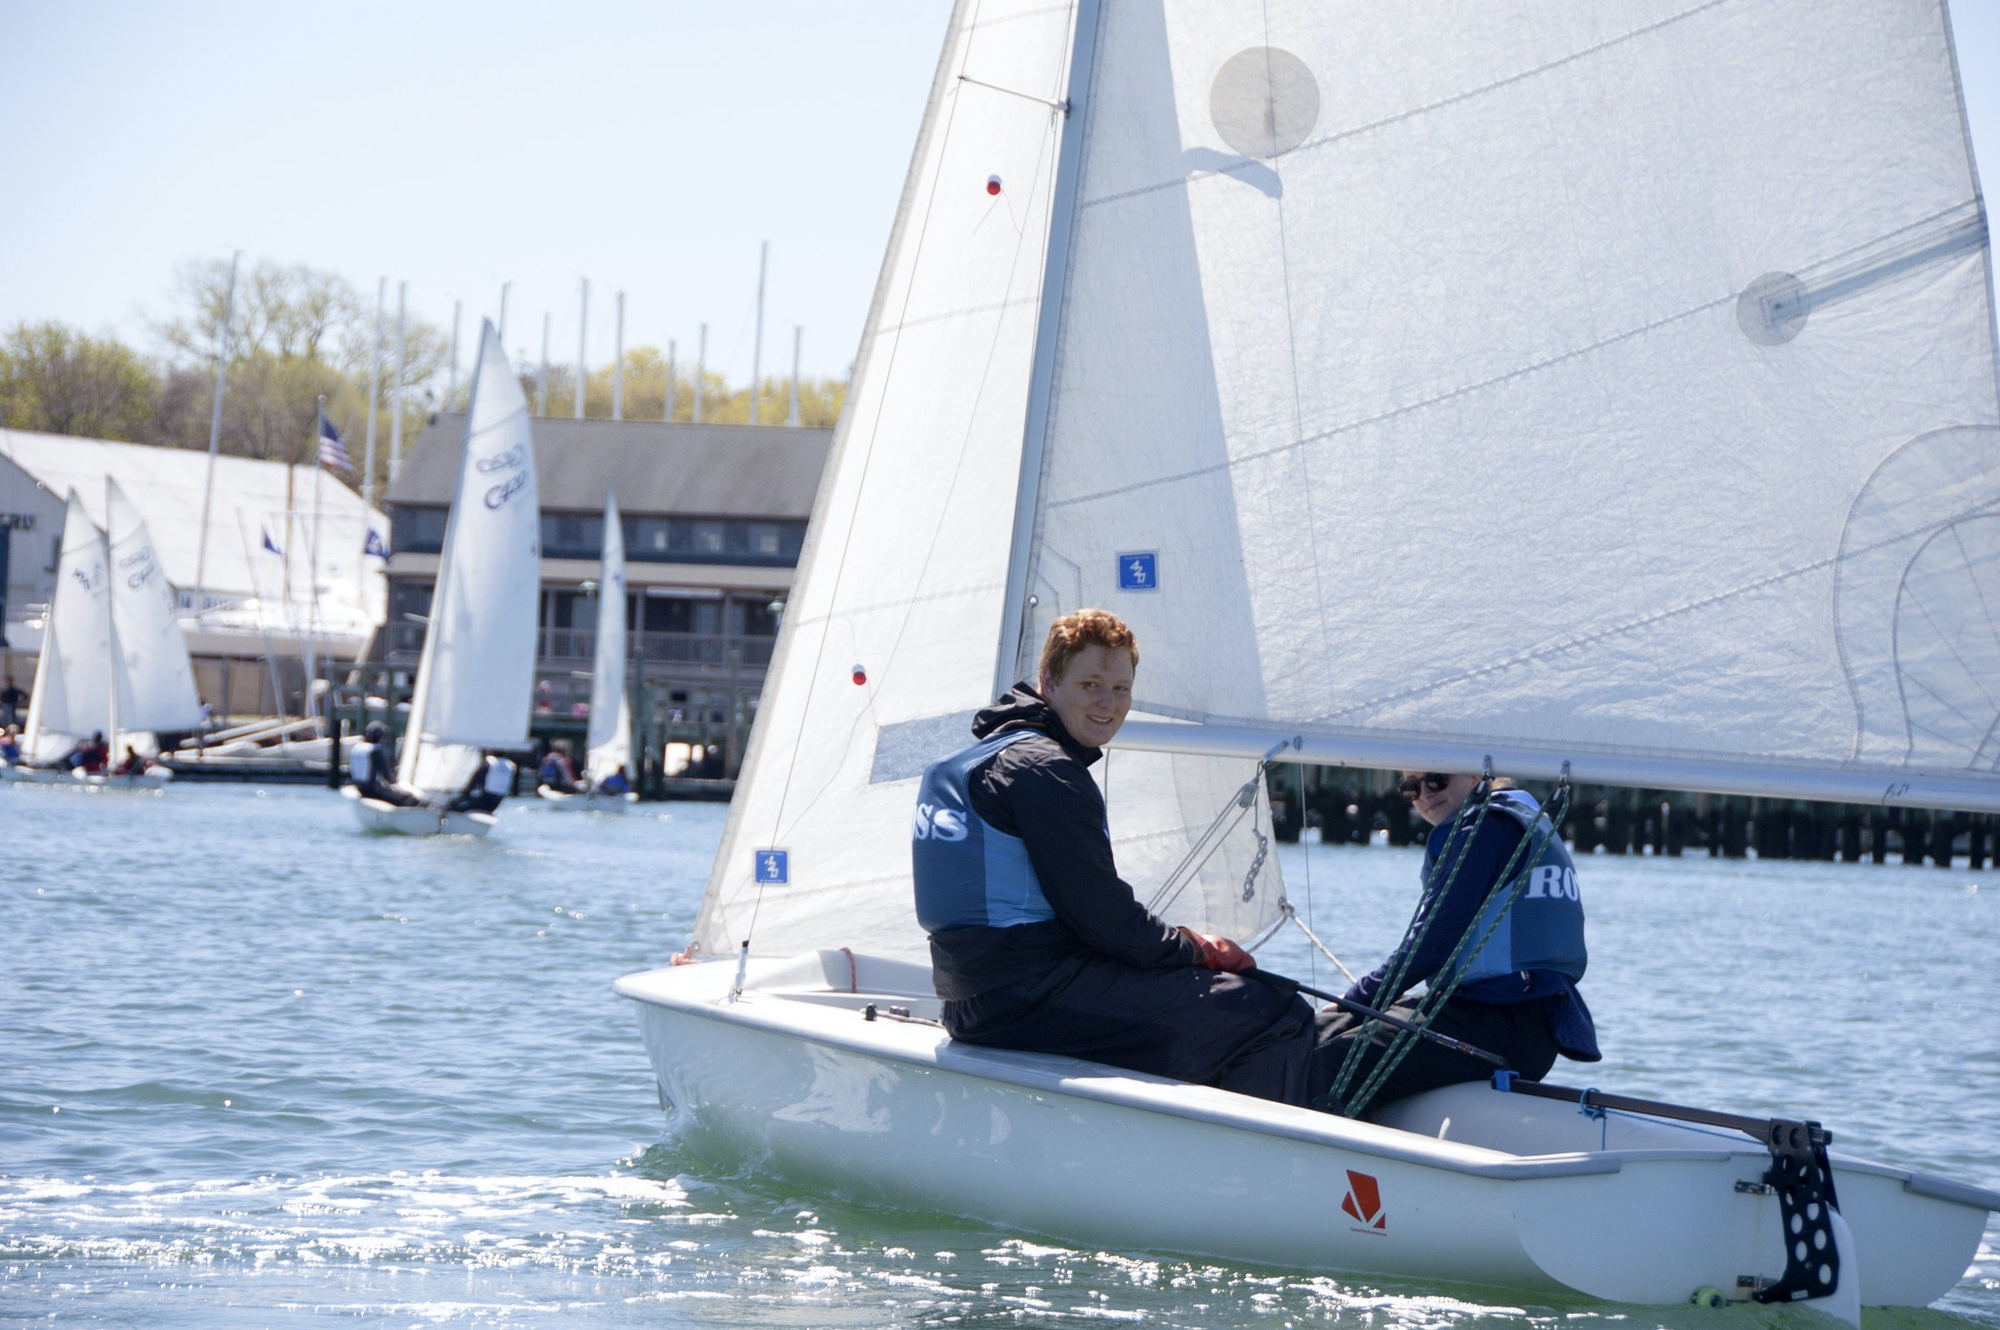 Sailing Club Participants Sailing on one the Beautiful Bays and Inlets of the Hamptons as Part of the Ross